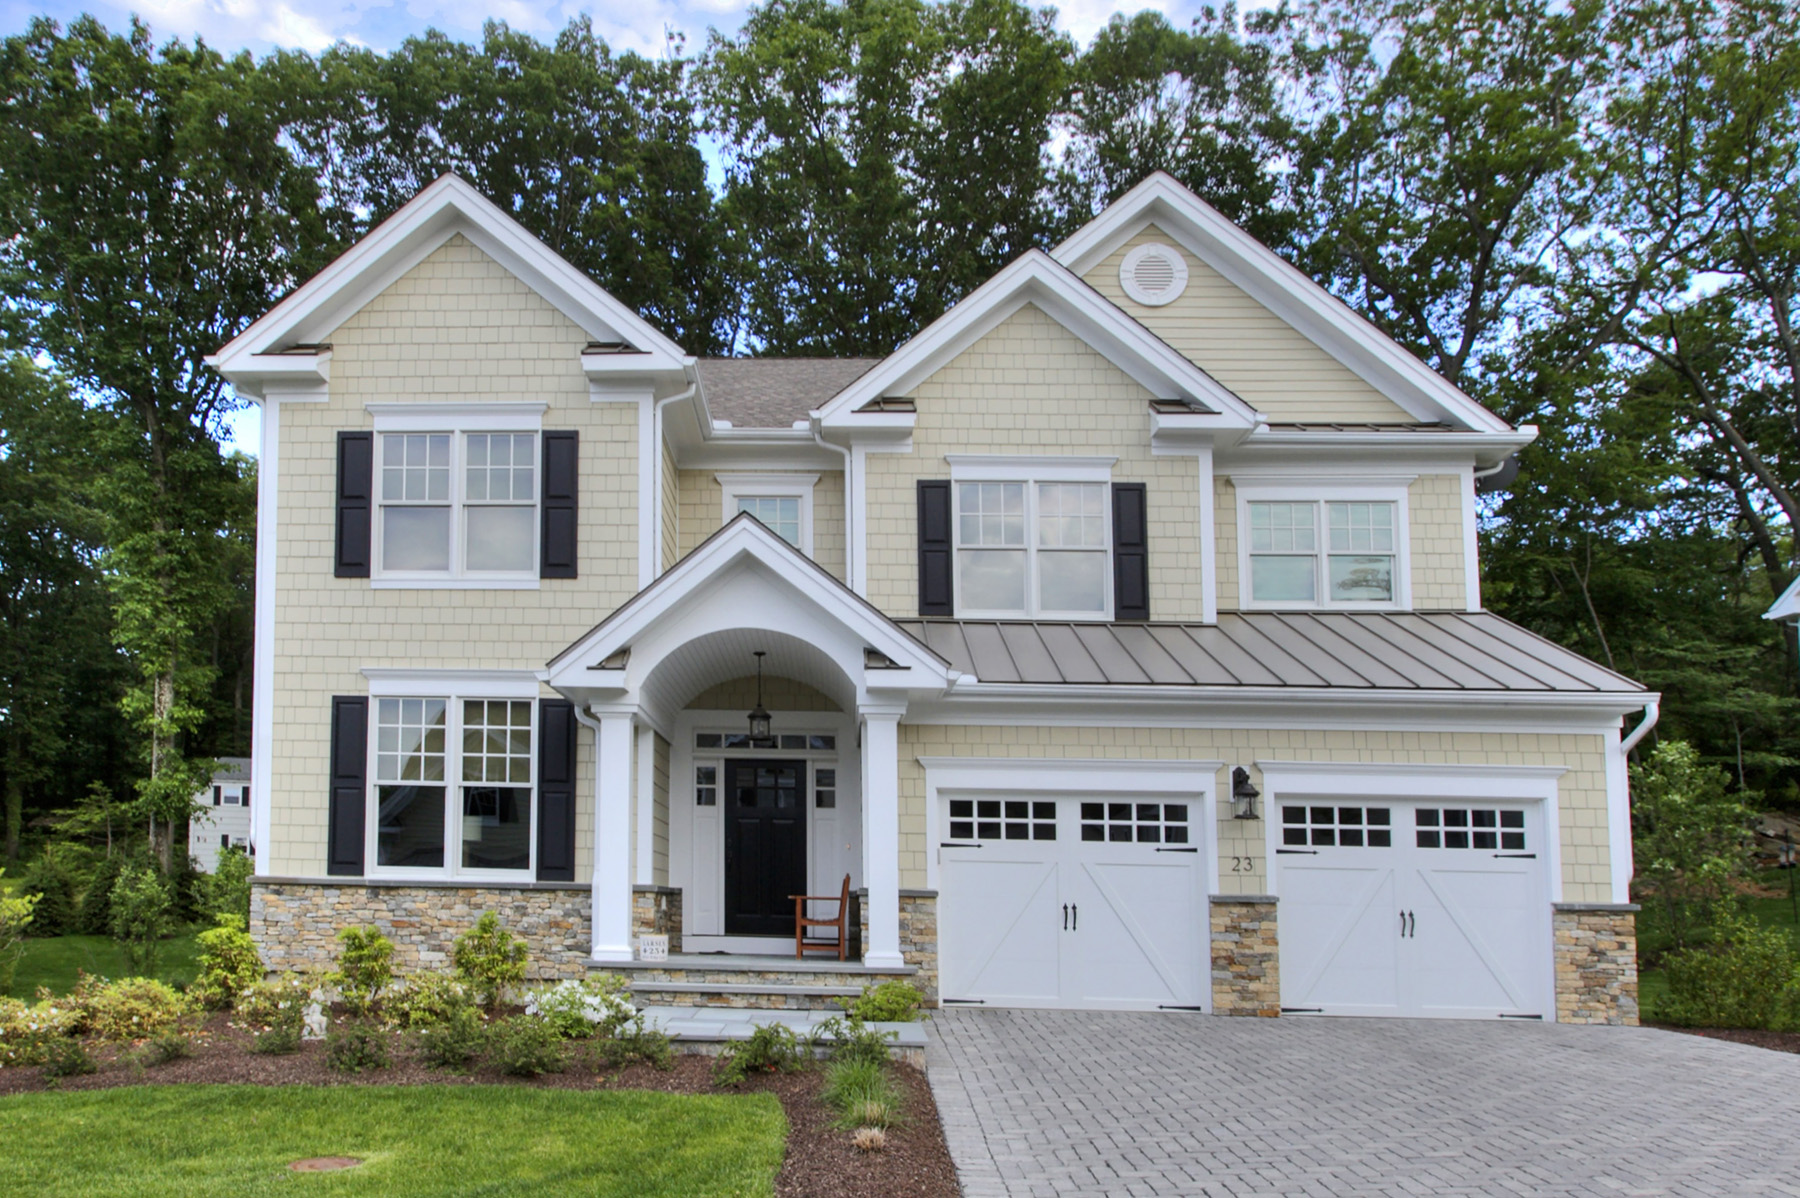 Single Family Home for Sale at 23 River Ridge Lane Wilton, Connecticut, 06897 United States